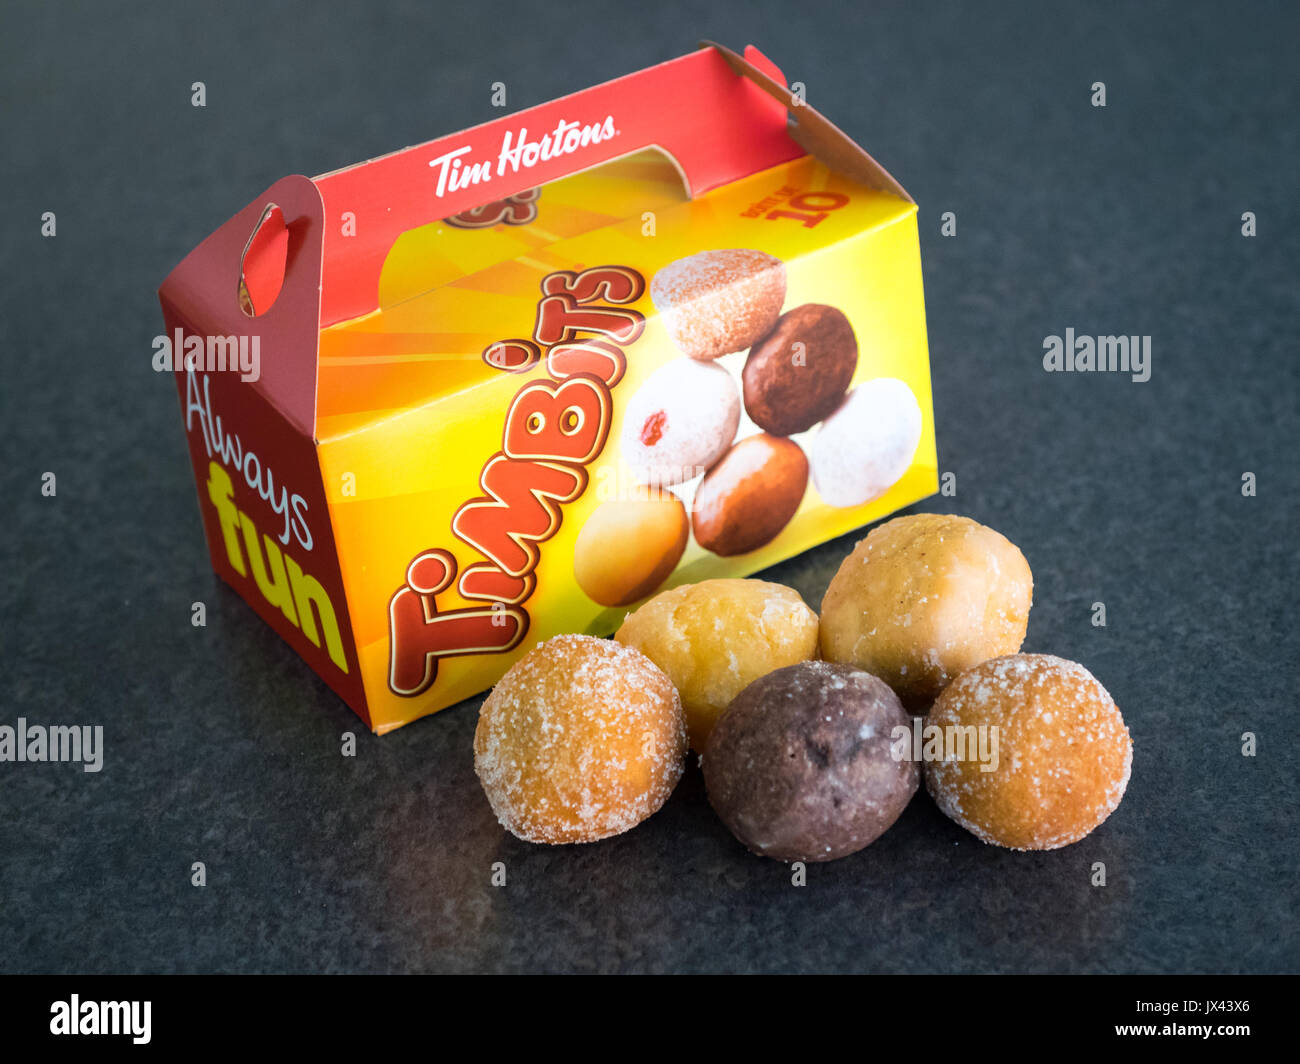 Timbits (donut holes, doughnut holes) from Tim Hortons, a popular Canadian fast food restaurant chain. Stock Photo